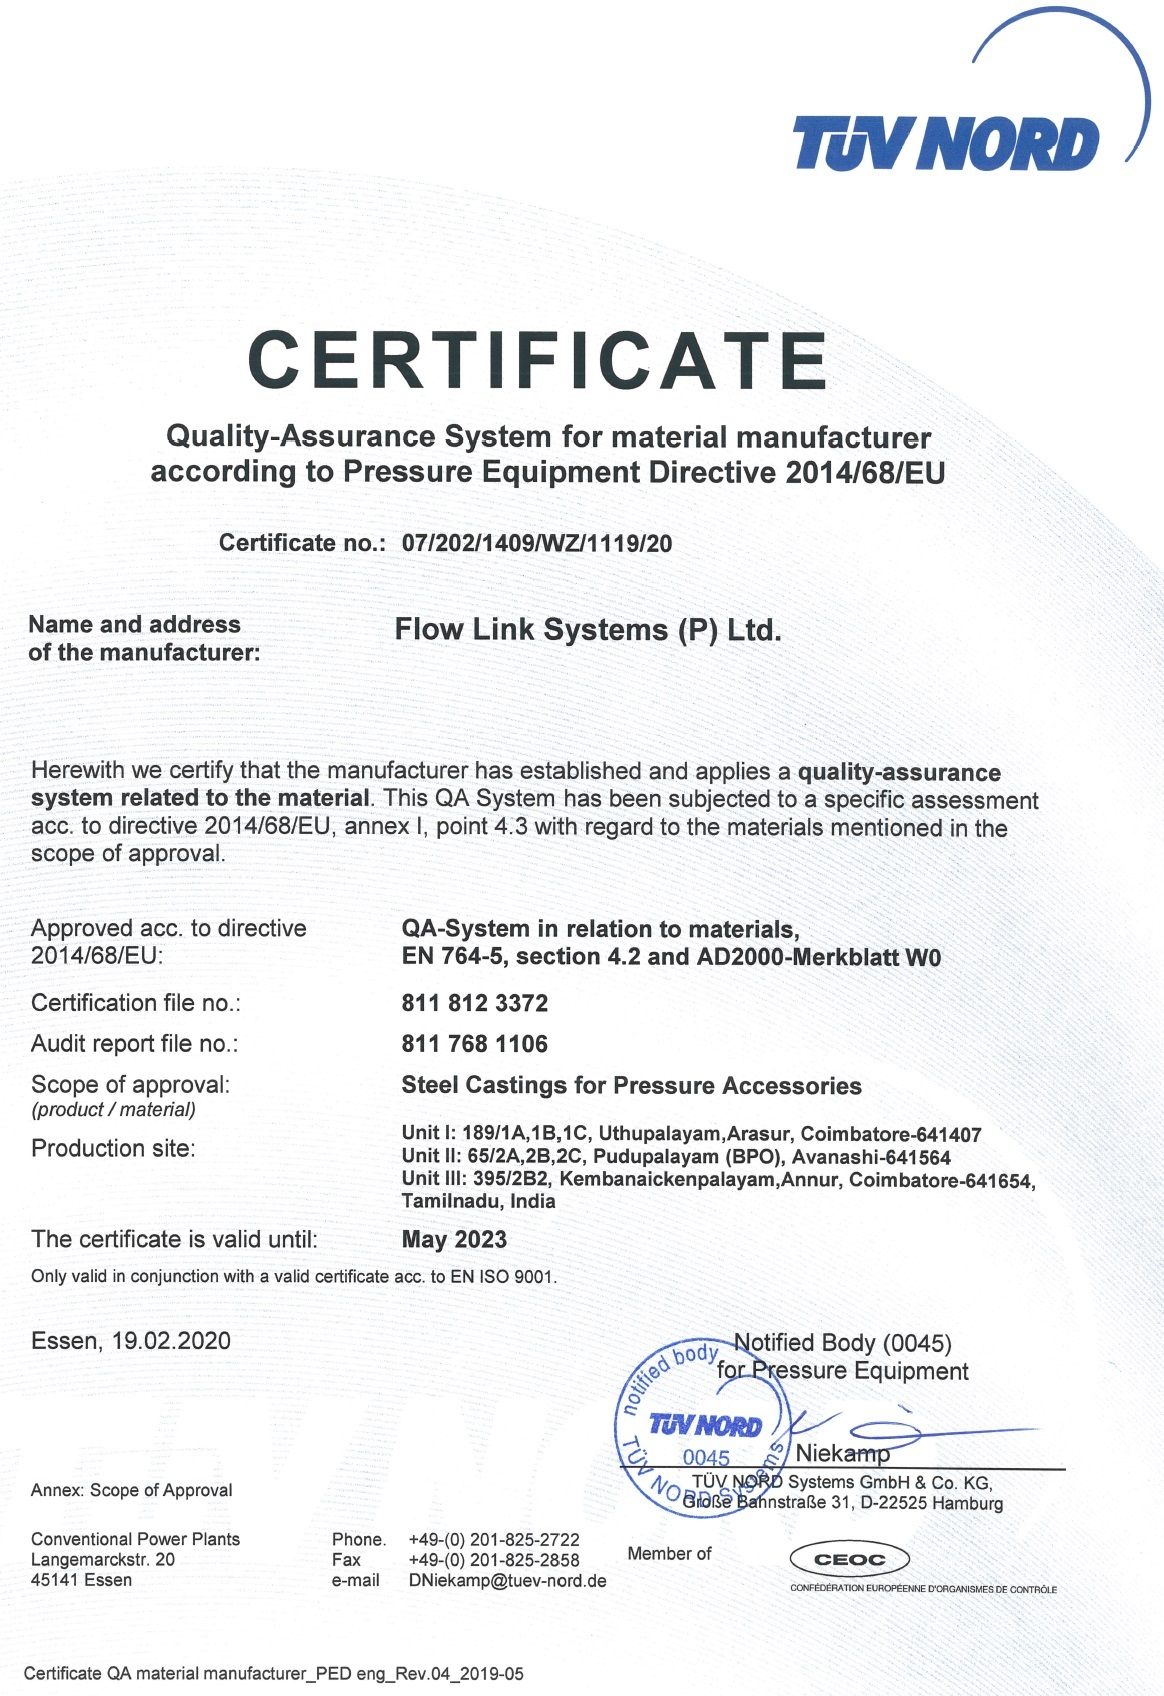 Flow Link Systems (P) Ltd.